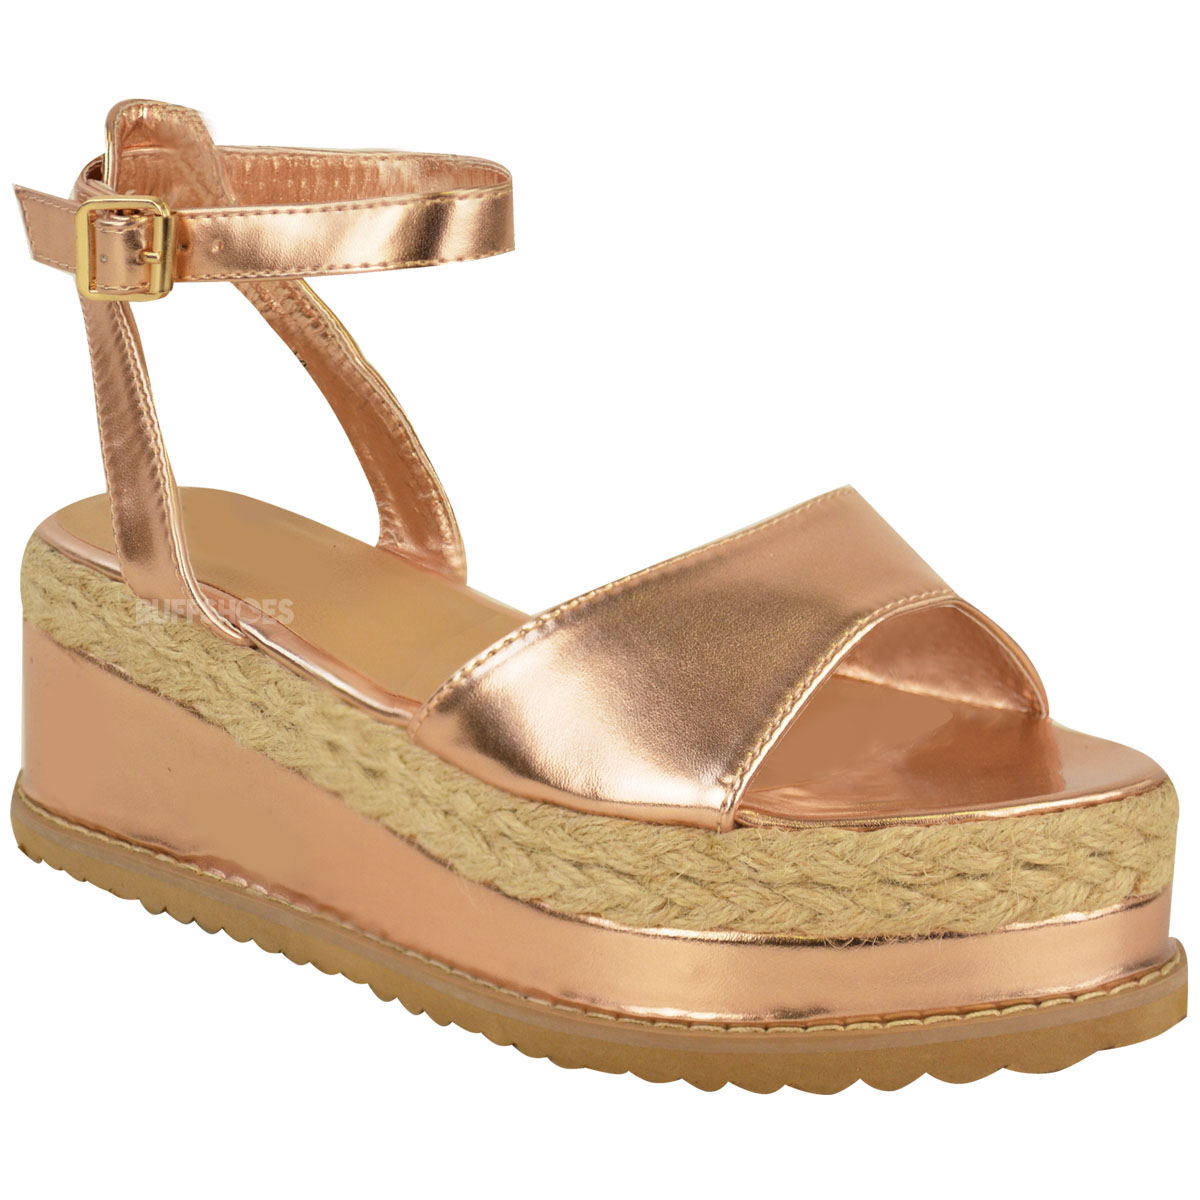 TOMS women's espadrilles are the most comfortable espadrilles out there. TOMS espadrilles for women come in fun prints and colors. Fabric options include suede, yarn dye, canvas, chambray, crochet, denim and more.